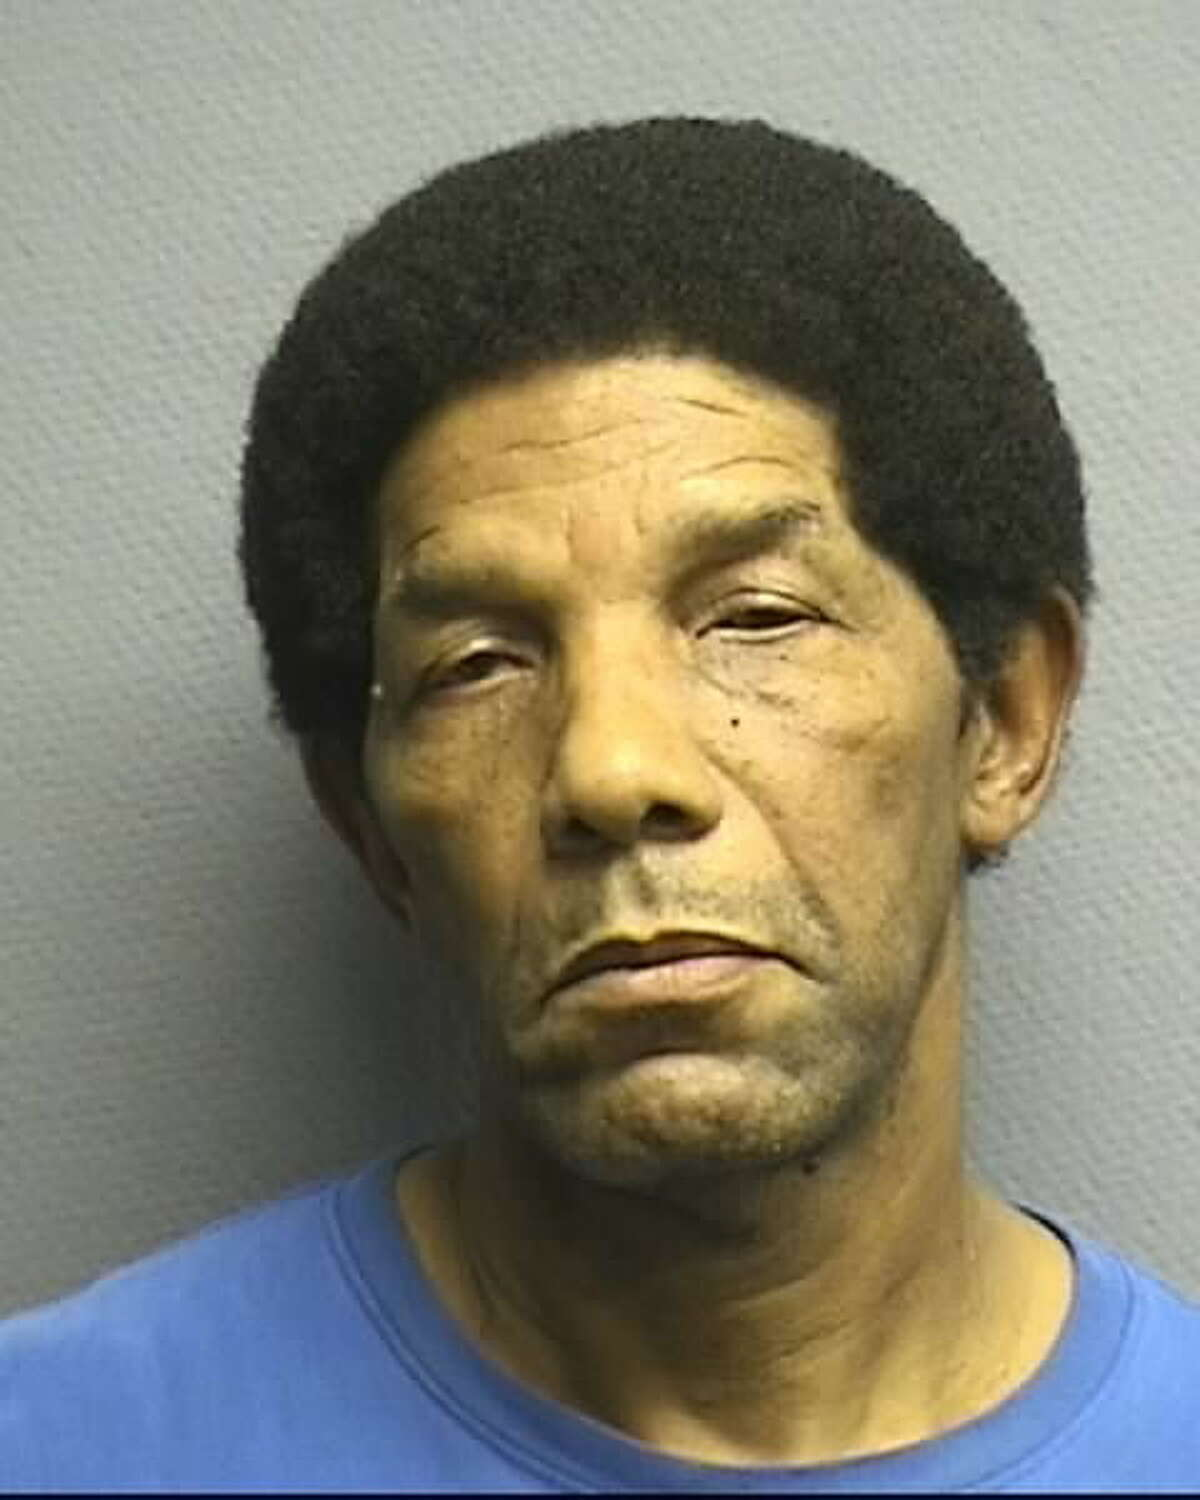 Johnny McGlory was arrested as part of Operation Traveling Circus. Between Jan. 4 and Feb. 26. Undercover deputies with Harris County Sheriff's Office and undercover officers with the Houston Police Department fanned out throughout the area in coordinated efforts to put a dent in the demand for prostitutes.